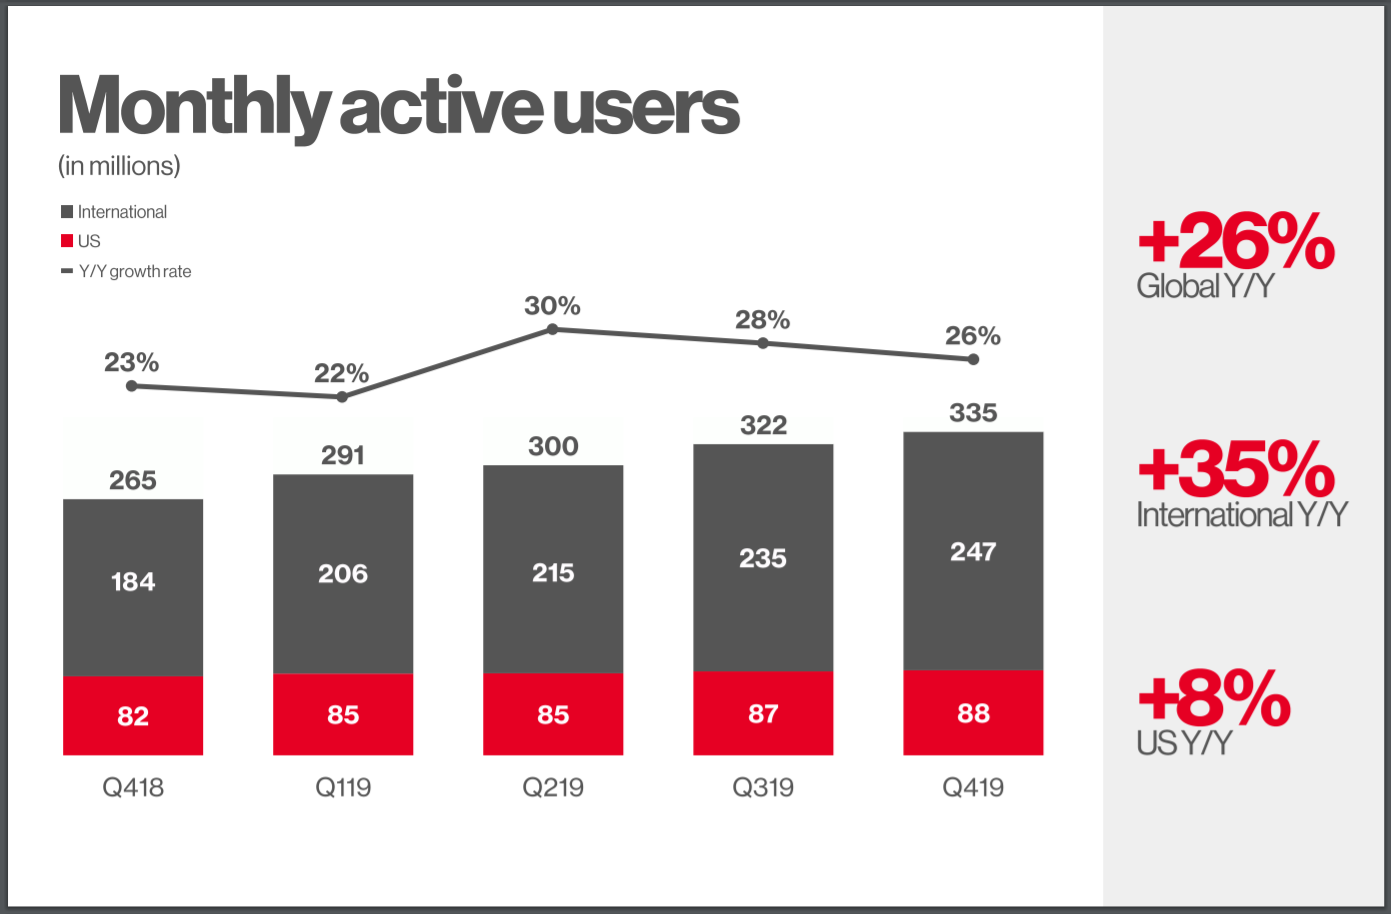 Pinterest Boasts 335 Million MAU in Q4 2019 report